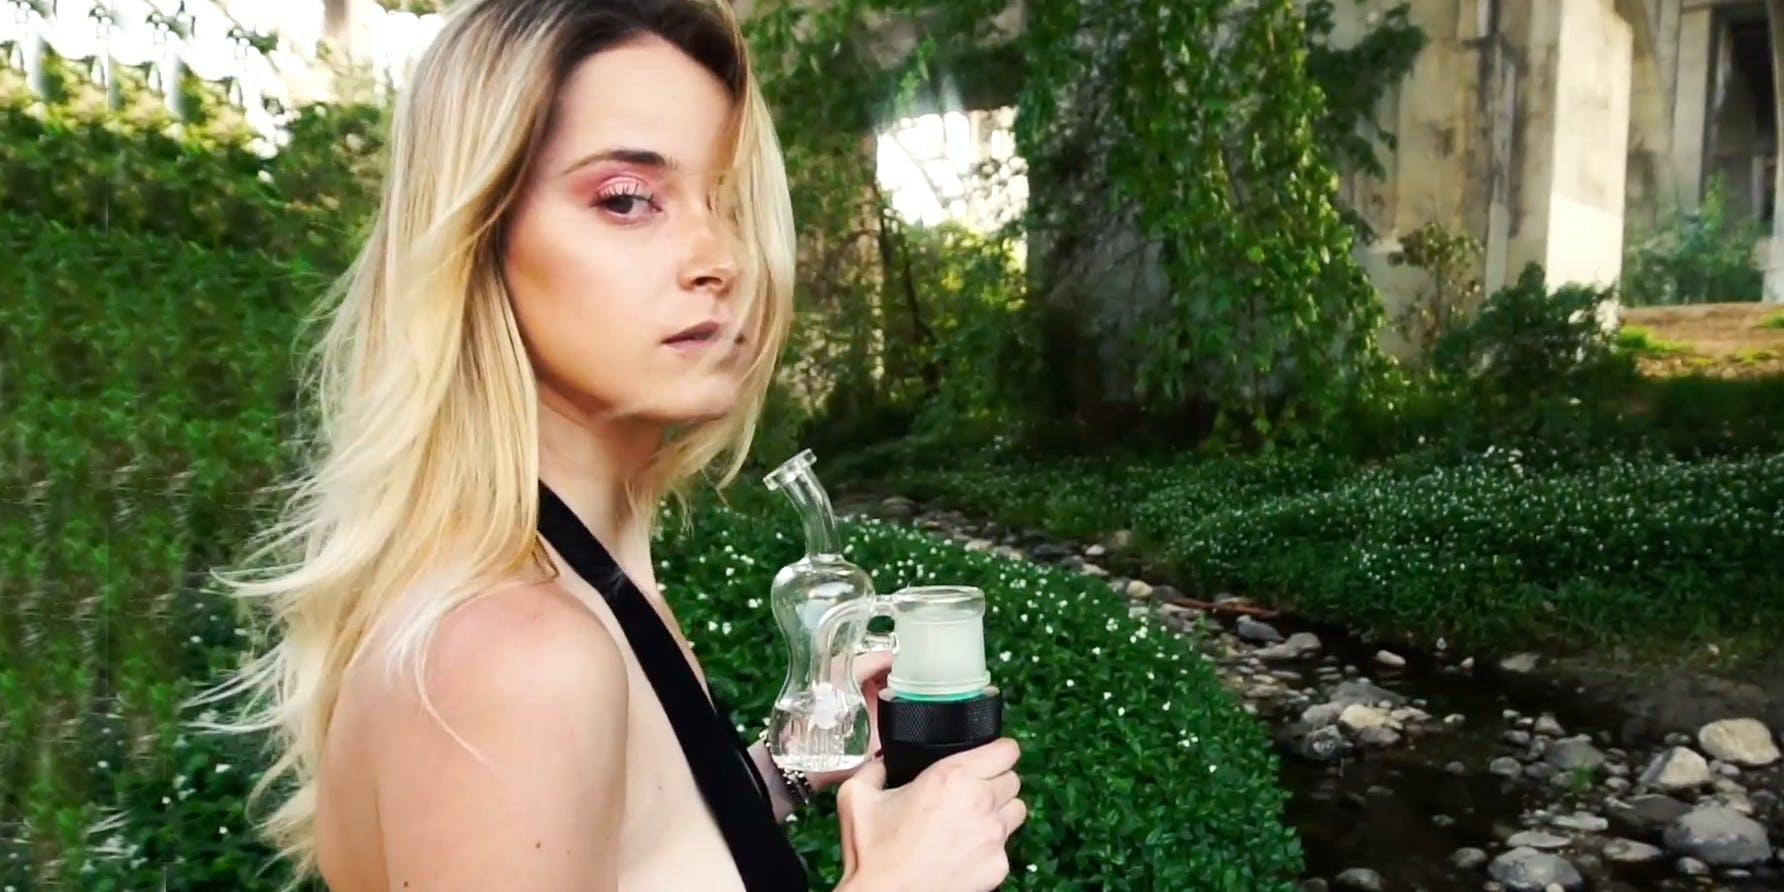 A woman enjoys the perks of erigs and dabs on the go